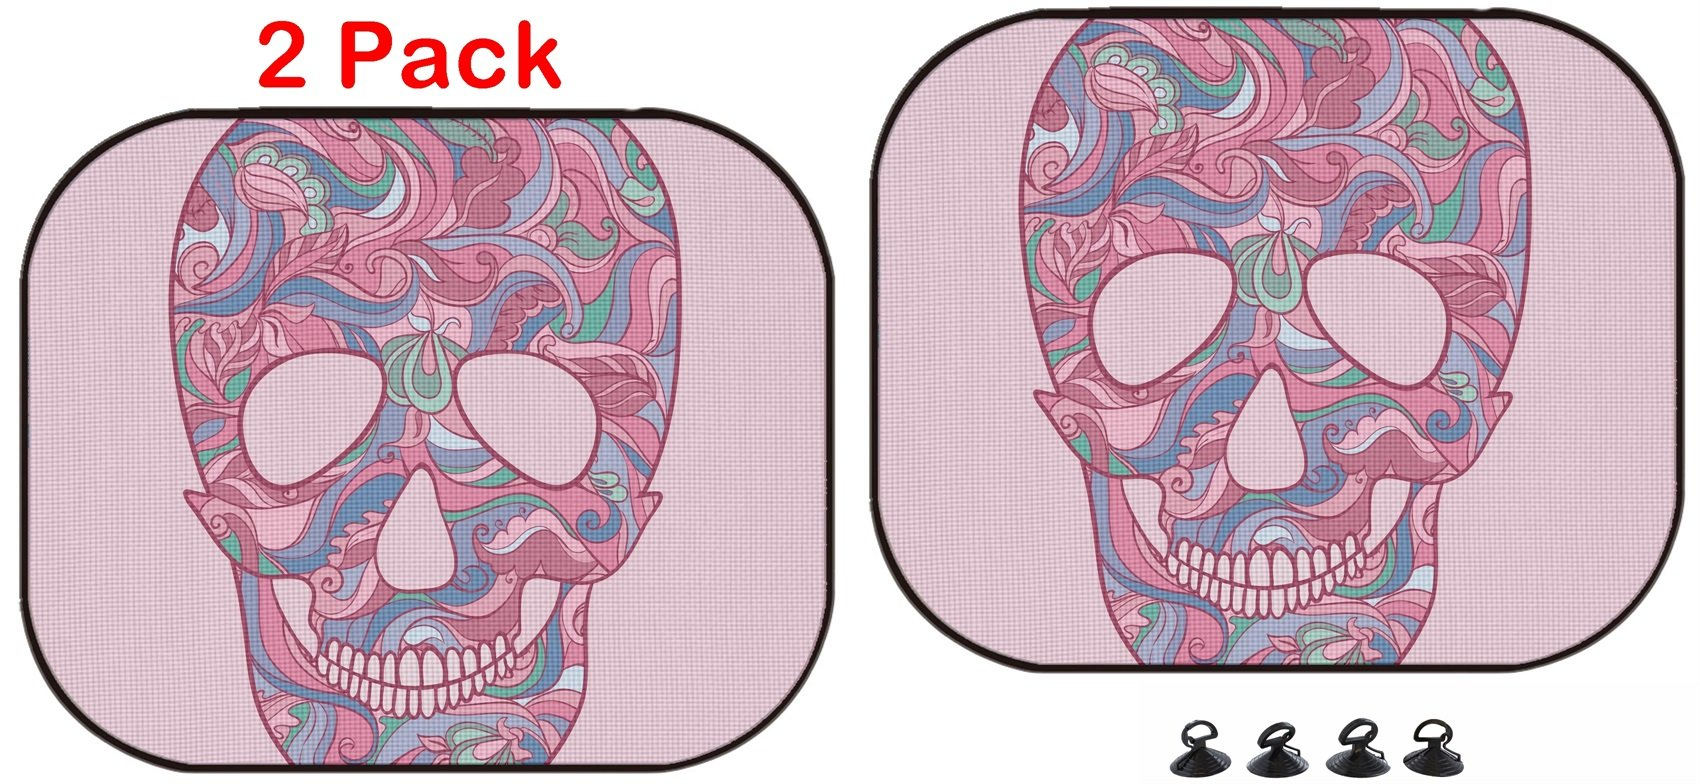 Luxlady Car Sun Shade Protector Block Damaging UV Rays Sunlight Heat for All Vehicles, 2 Pack Image ID: 32407211 Sugar Skull with Ornament by Luxlady